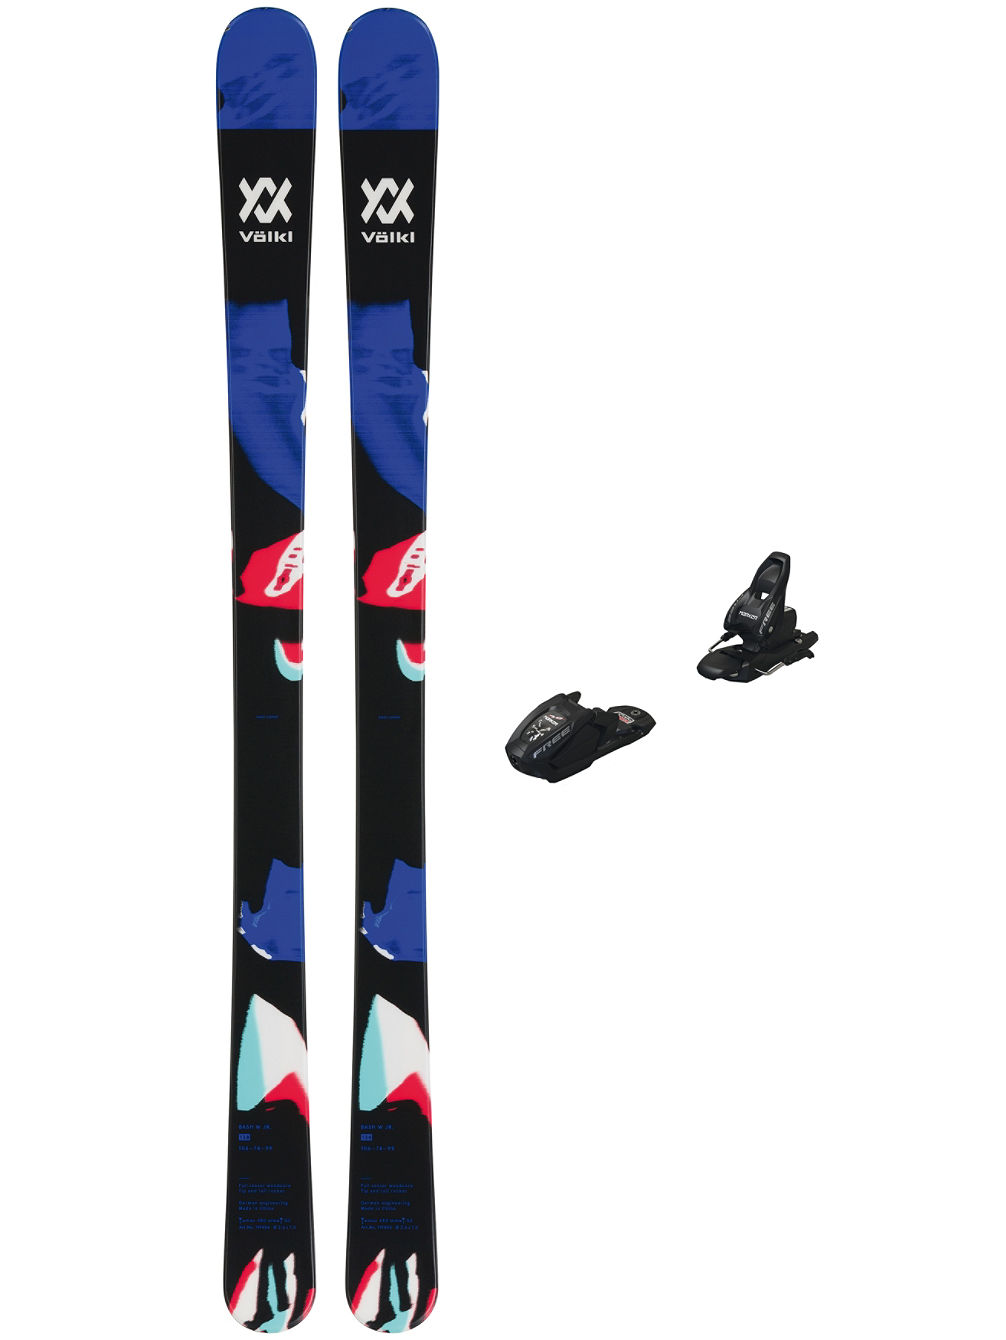 Bash W Jr 148 + Free 7 85 2020 Freeski-Set